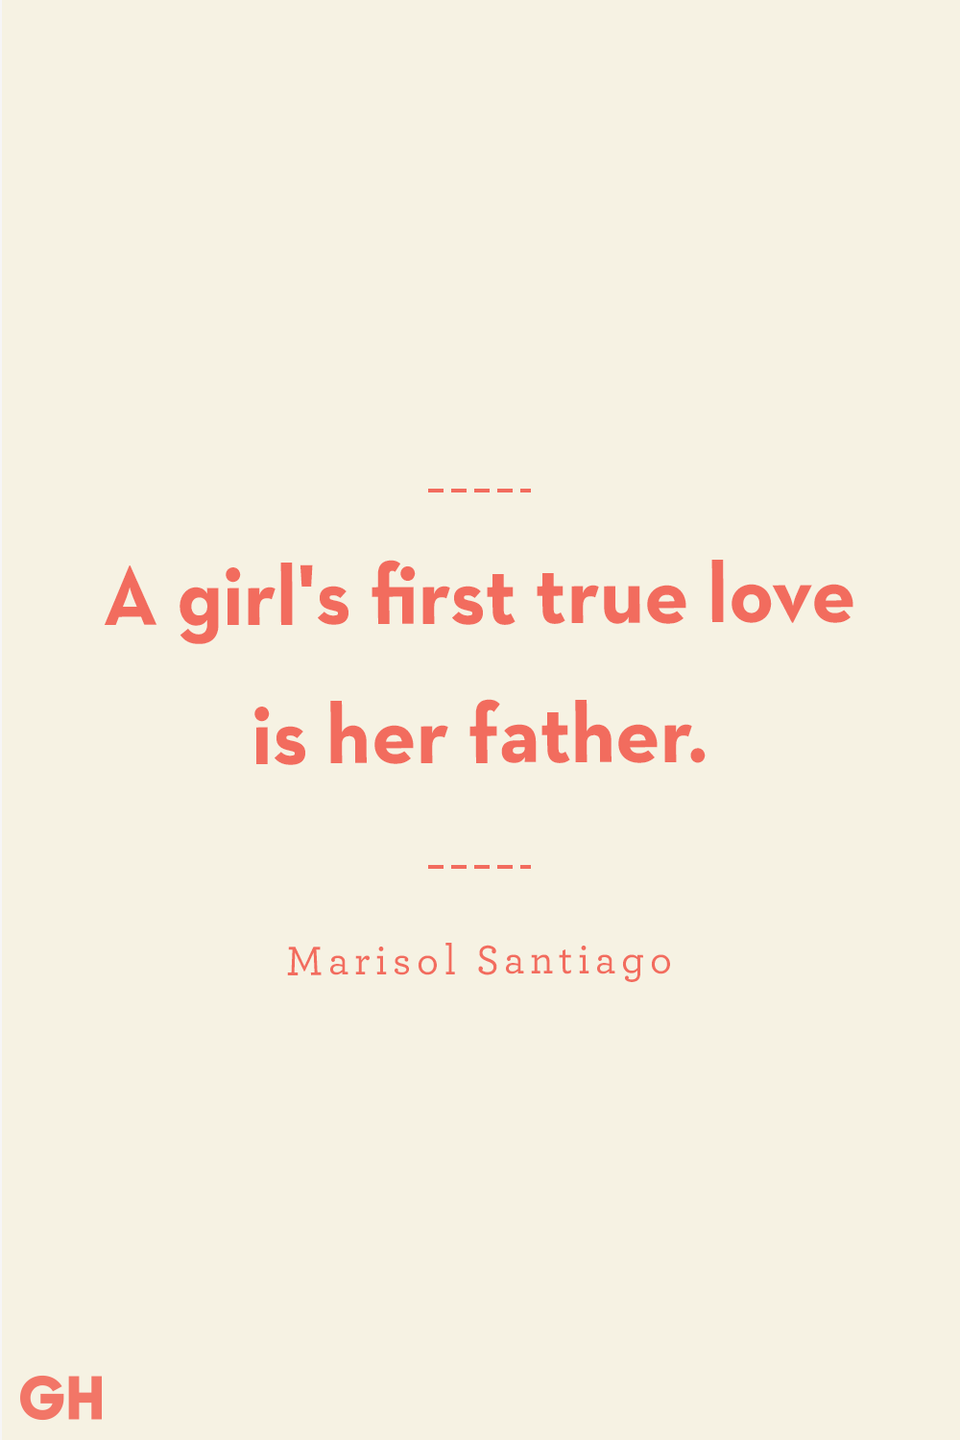 <p>A girl's first true love is her father.</p>